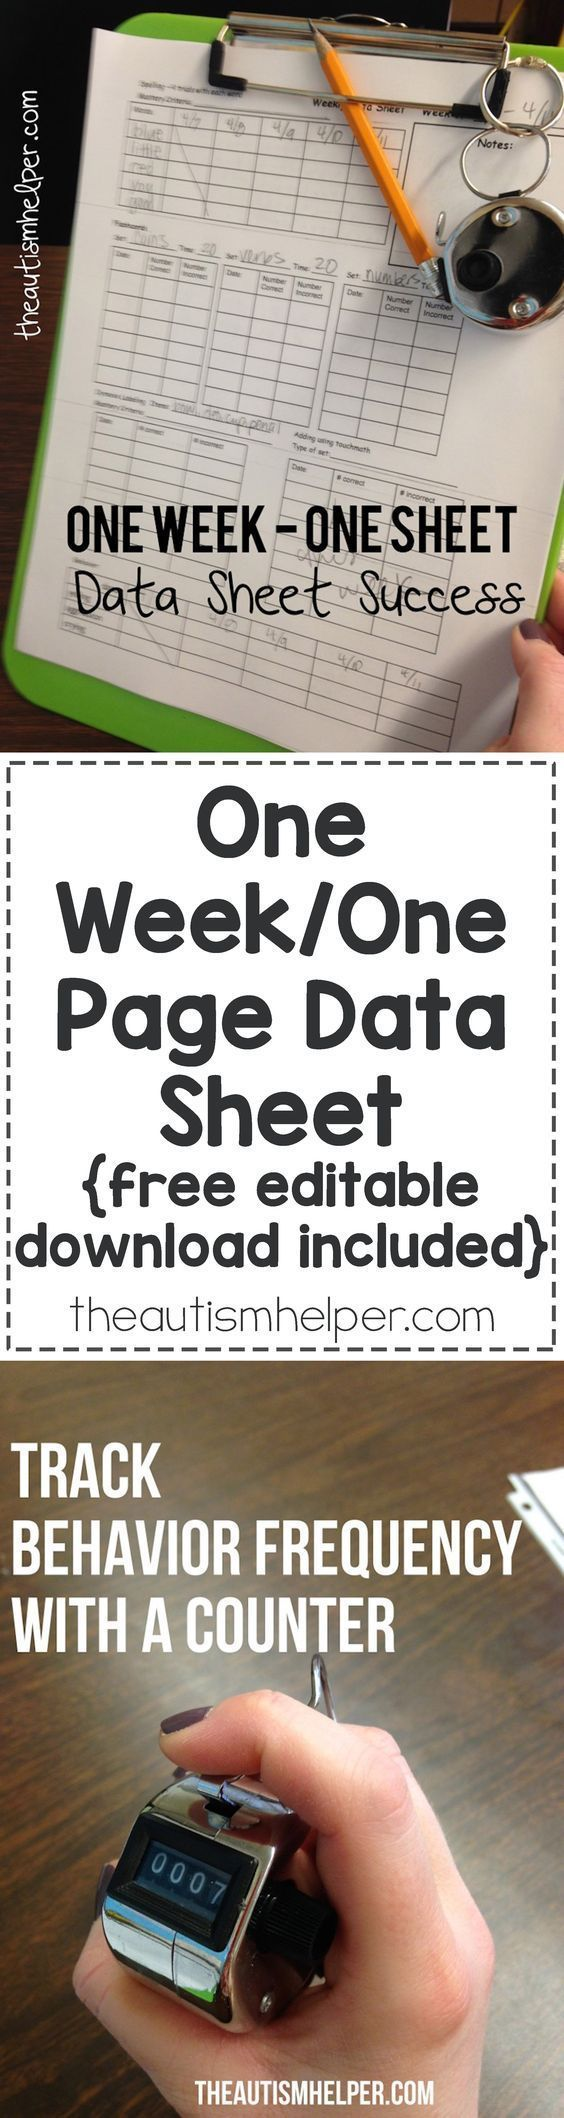 Having data all on one page in a compressed & organized setup helps make the data process as streamlined as possible! Download our One-Week-Data-Sheet for FREE on the blog!! From theautismhelper.com #theautismhelper